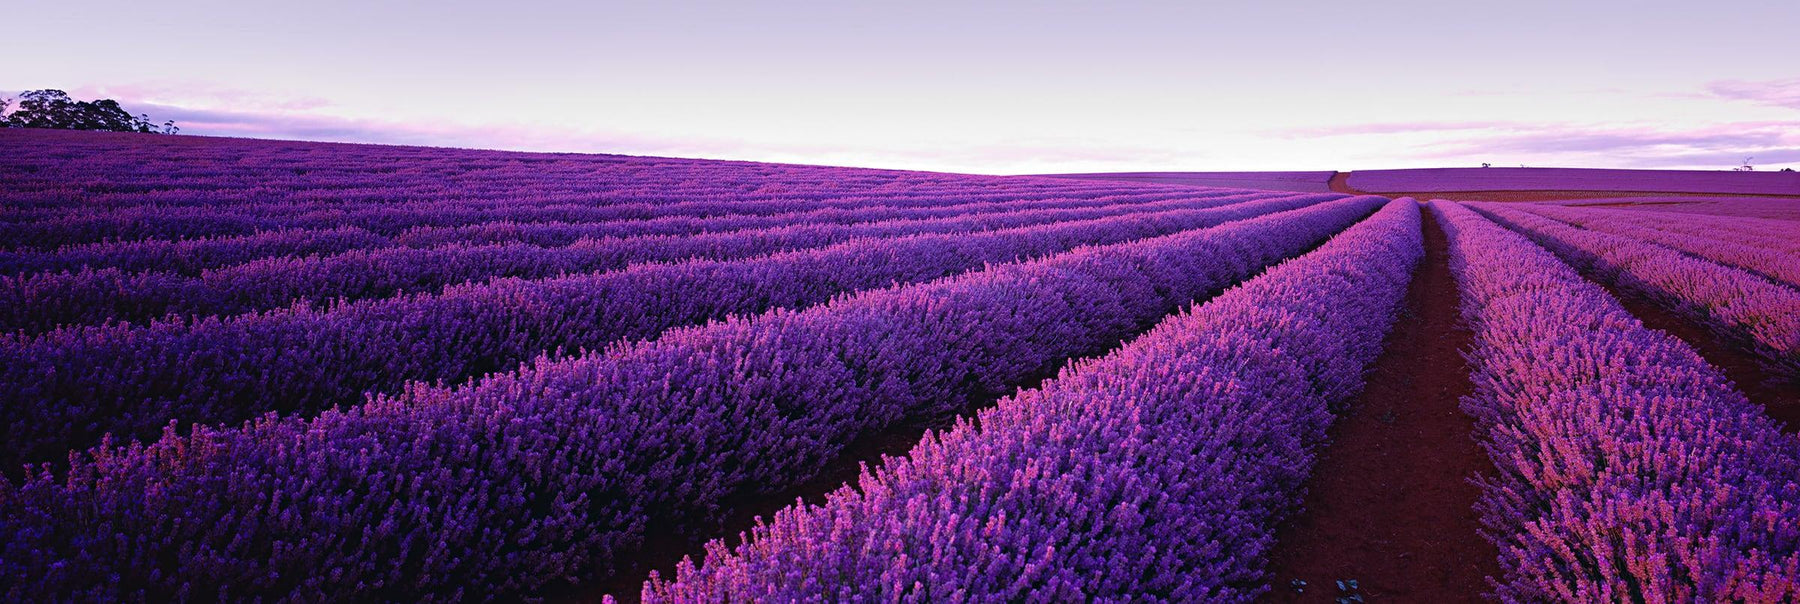 Endless field of purple lavender bushes in Tasmania, Australia